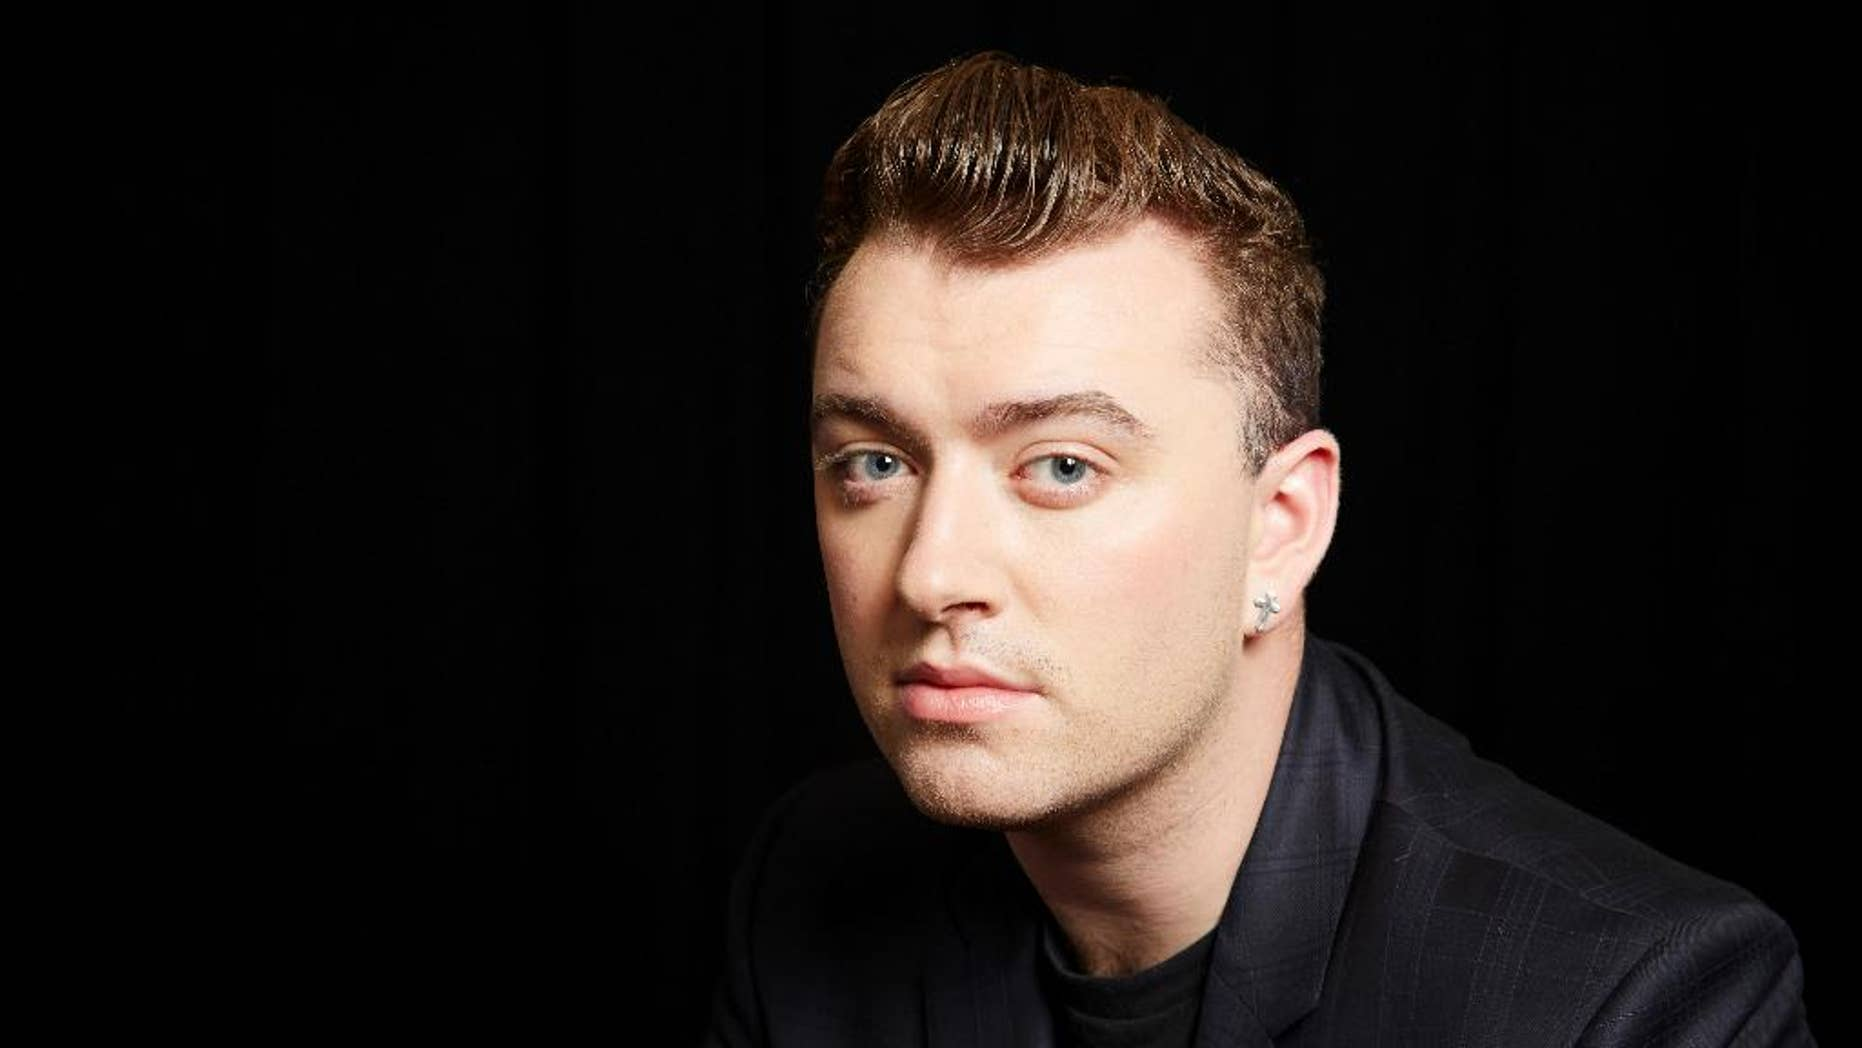 FILE - In this Wed., Sept. 17, 2014 file photo, British soul singer Sam Smith poses for a portrait, in New York. Smith is competing against Beck, Beyonce, Ed Sheeran and Pharrell for album of the year at this year's Grammy Awards on Sunday, Feb. 8. (Photo by Dan Hallman/Invision/AP, File)